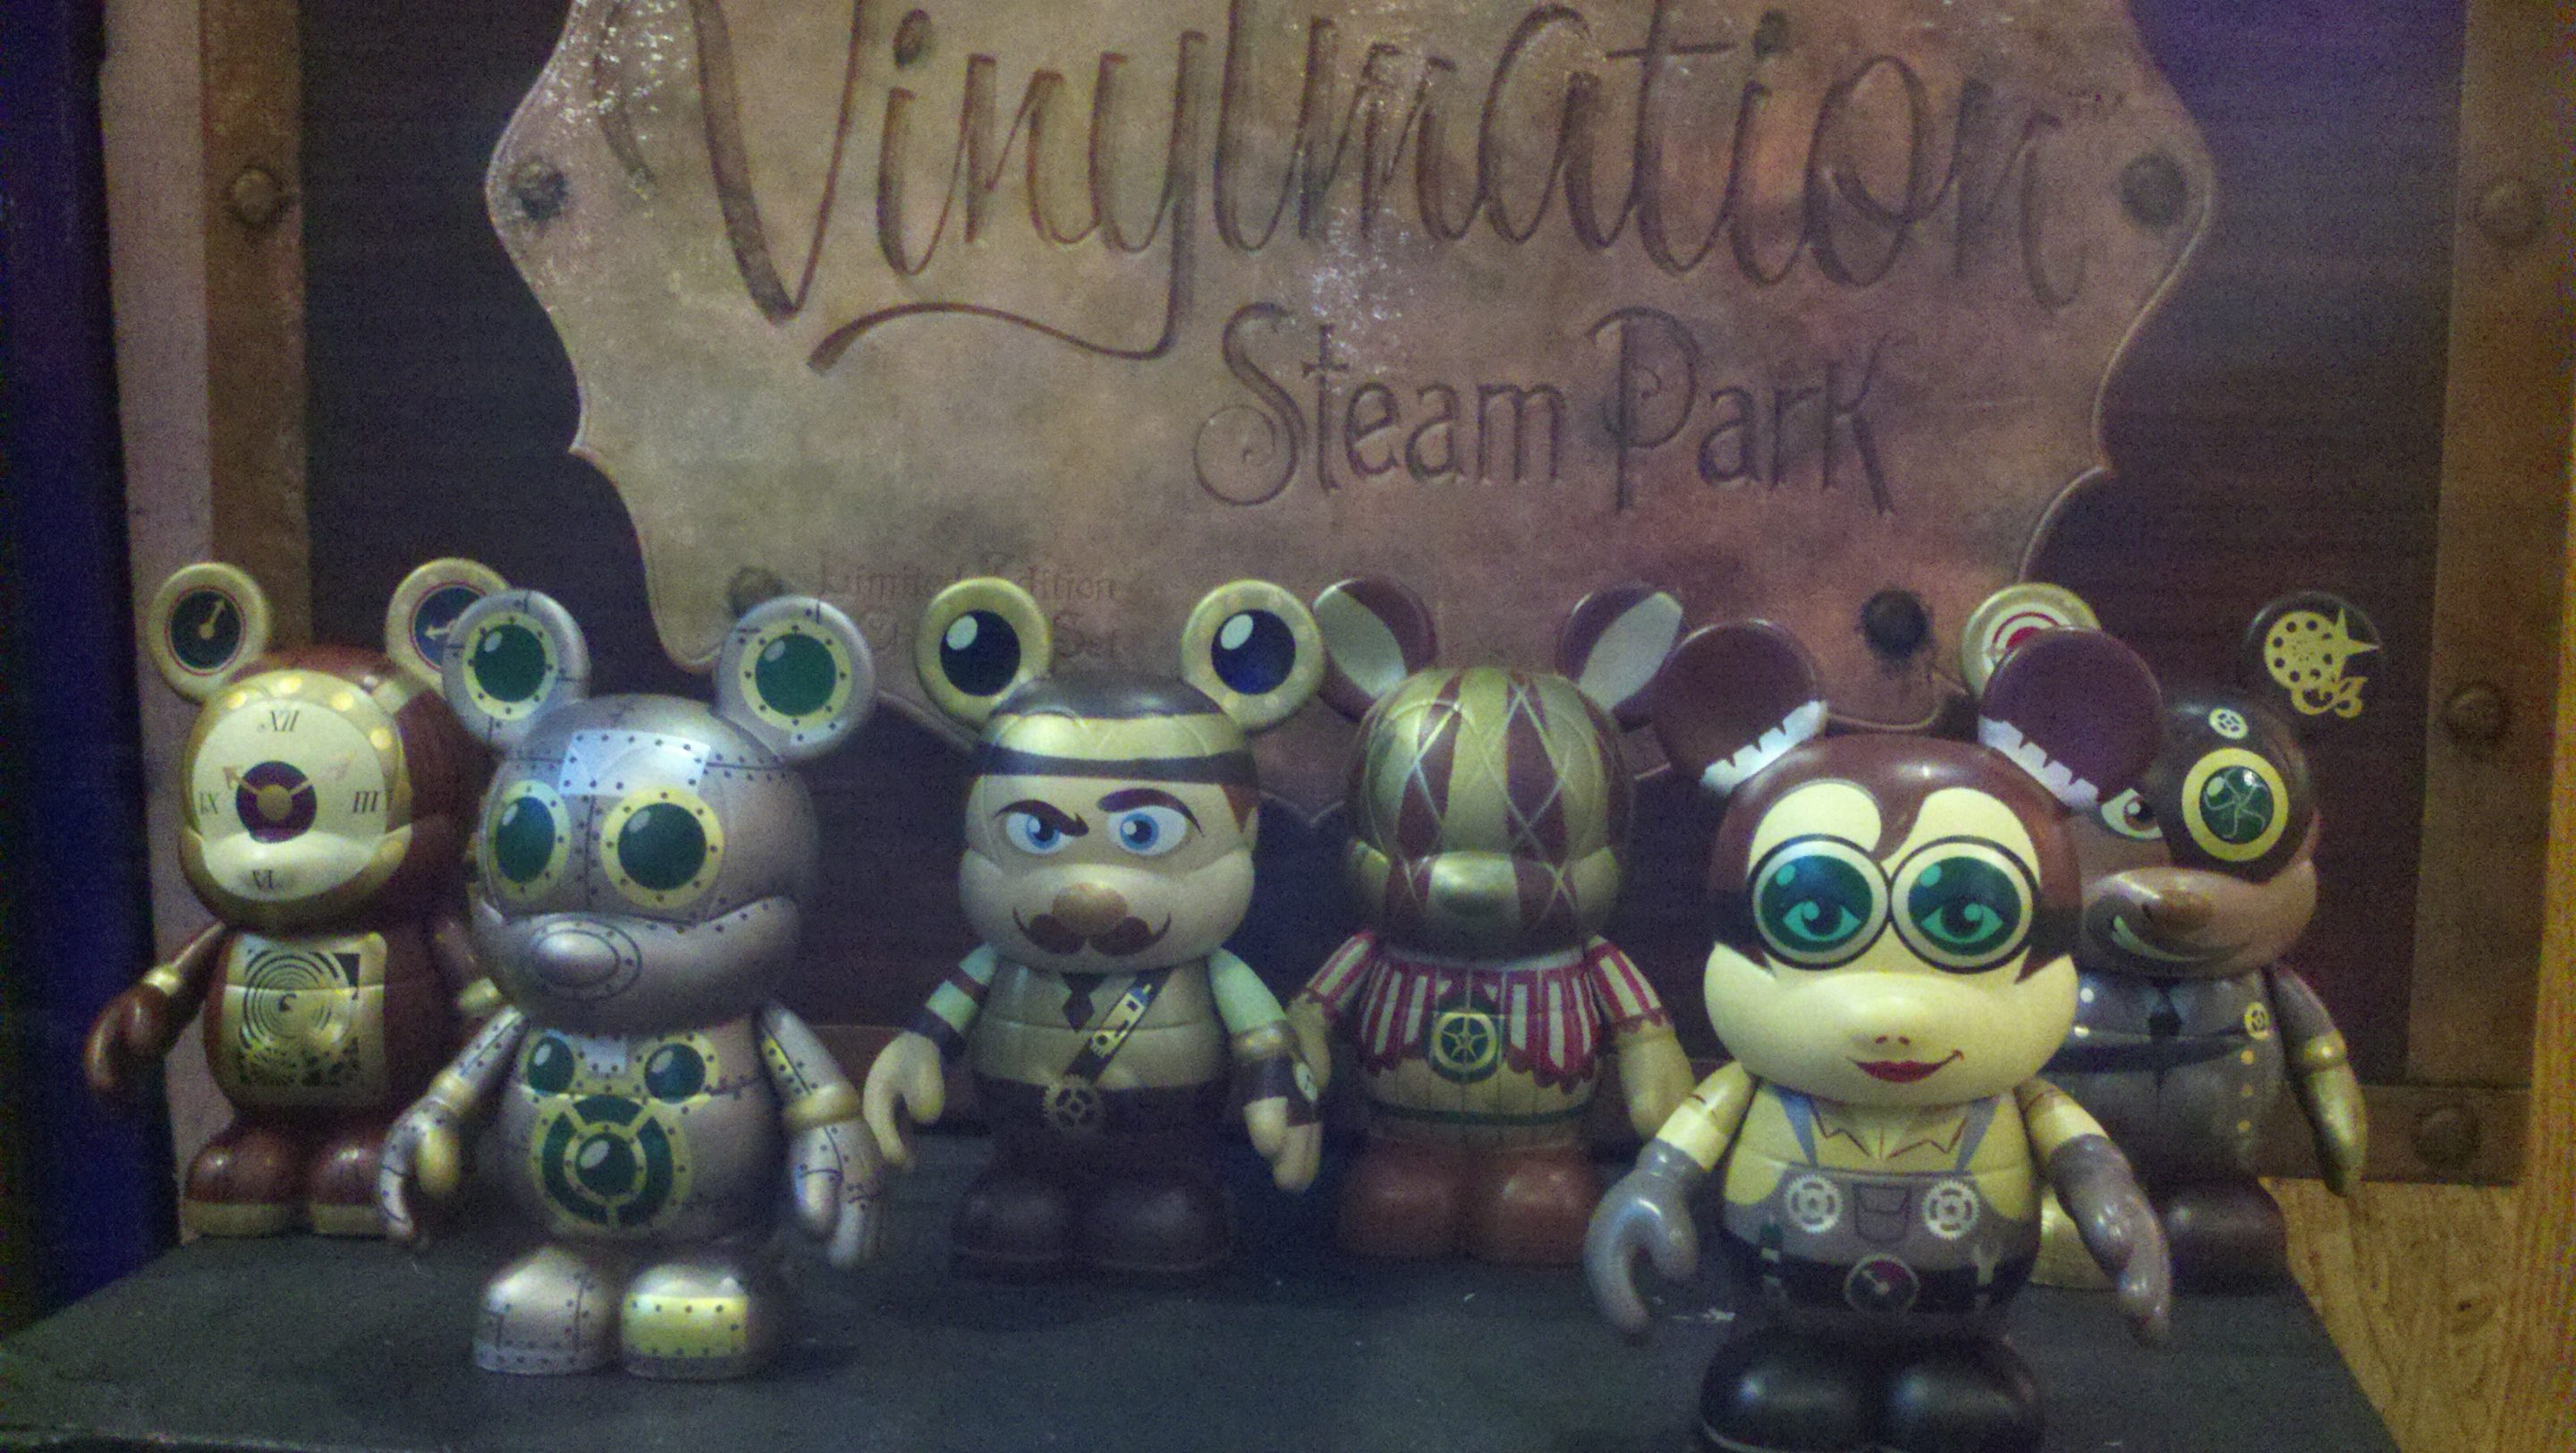 Limited Edition Steampunk Vinylmation Set